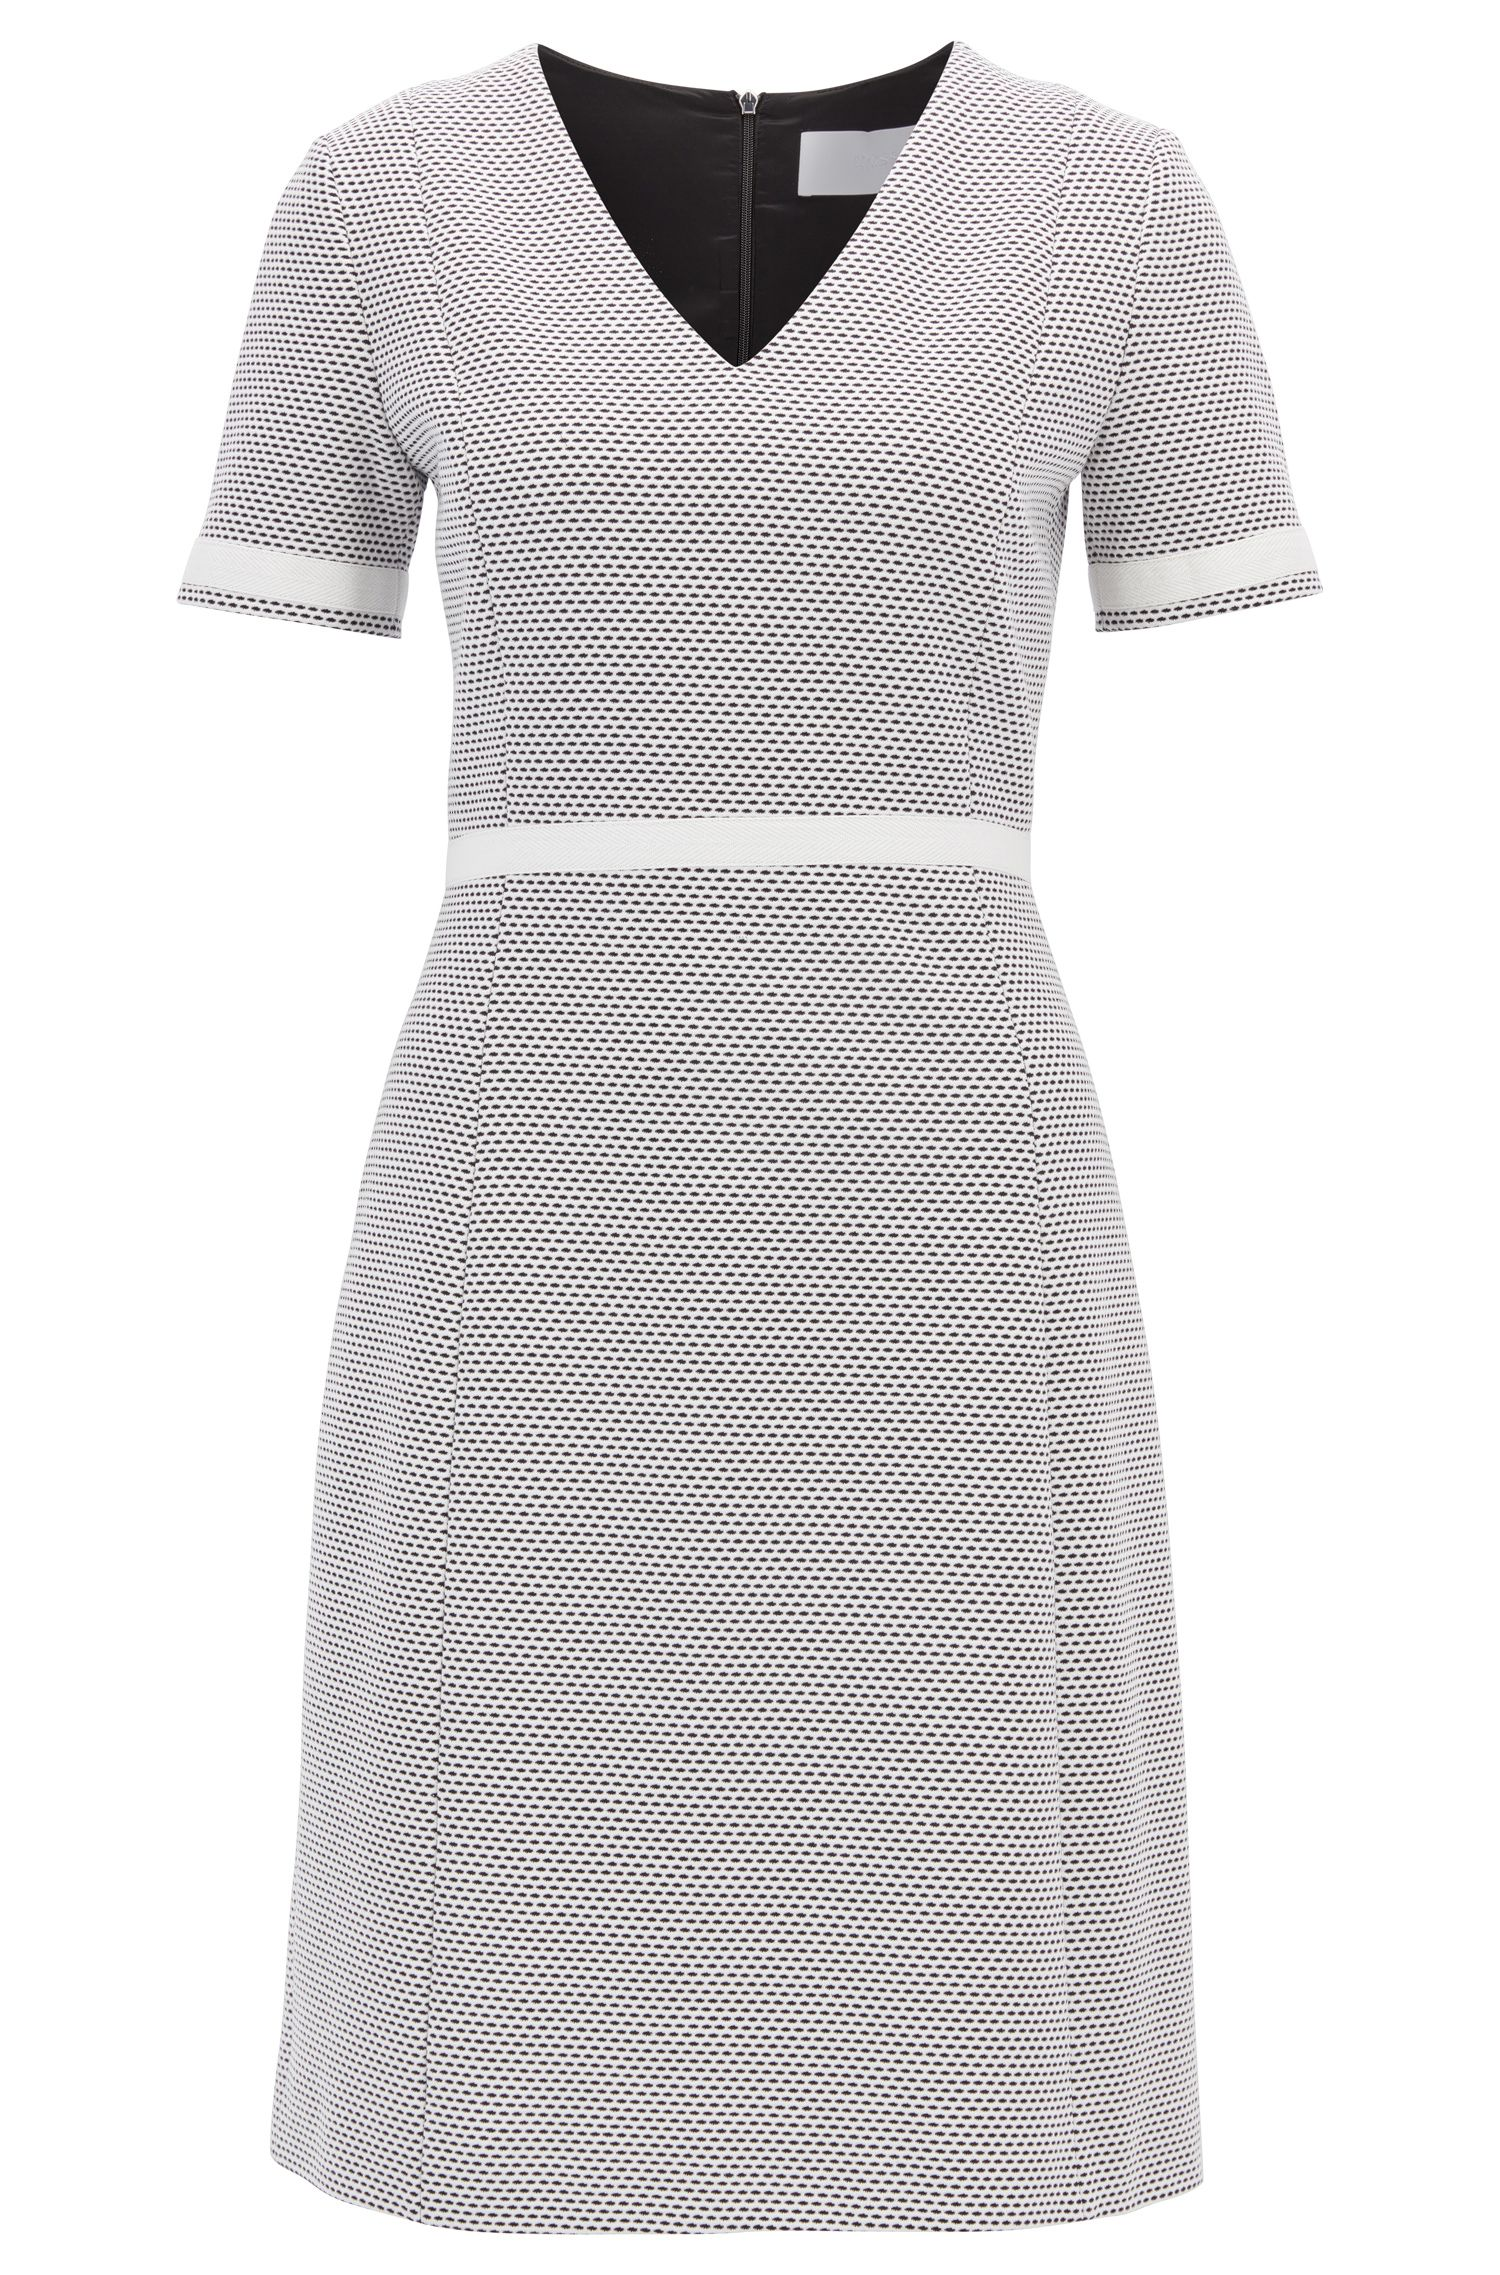 V-Neck Dress | Higaniu, Patterned